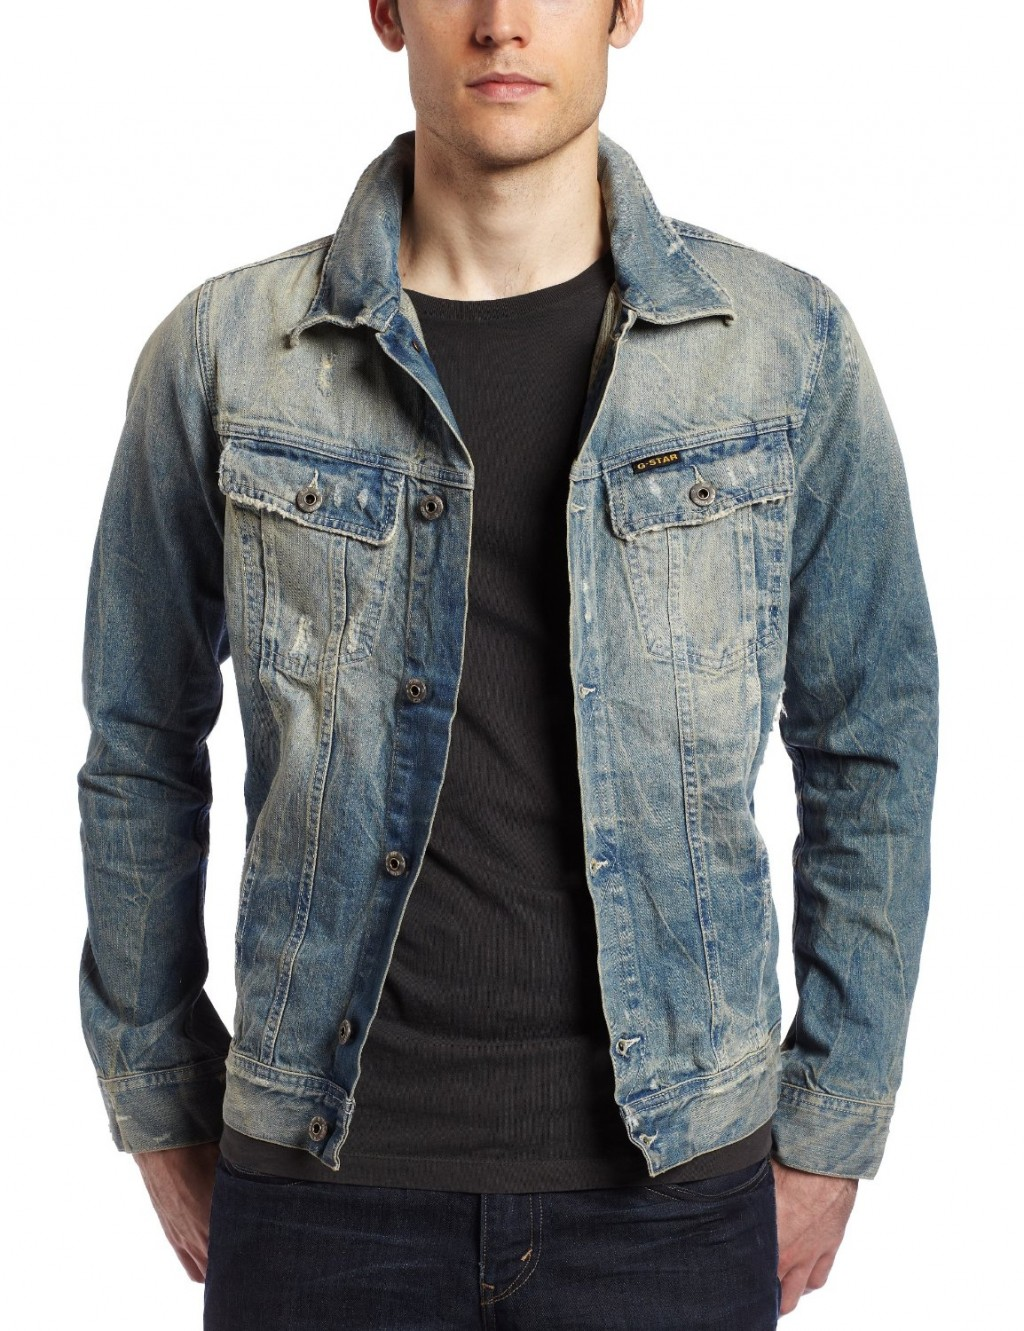 Free shipping BOTH ways on Jean Jackets, Women, from our vast selection of styles. Fast delivery, and 24/7/ real-person service with a smile. Click or call